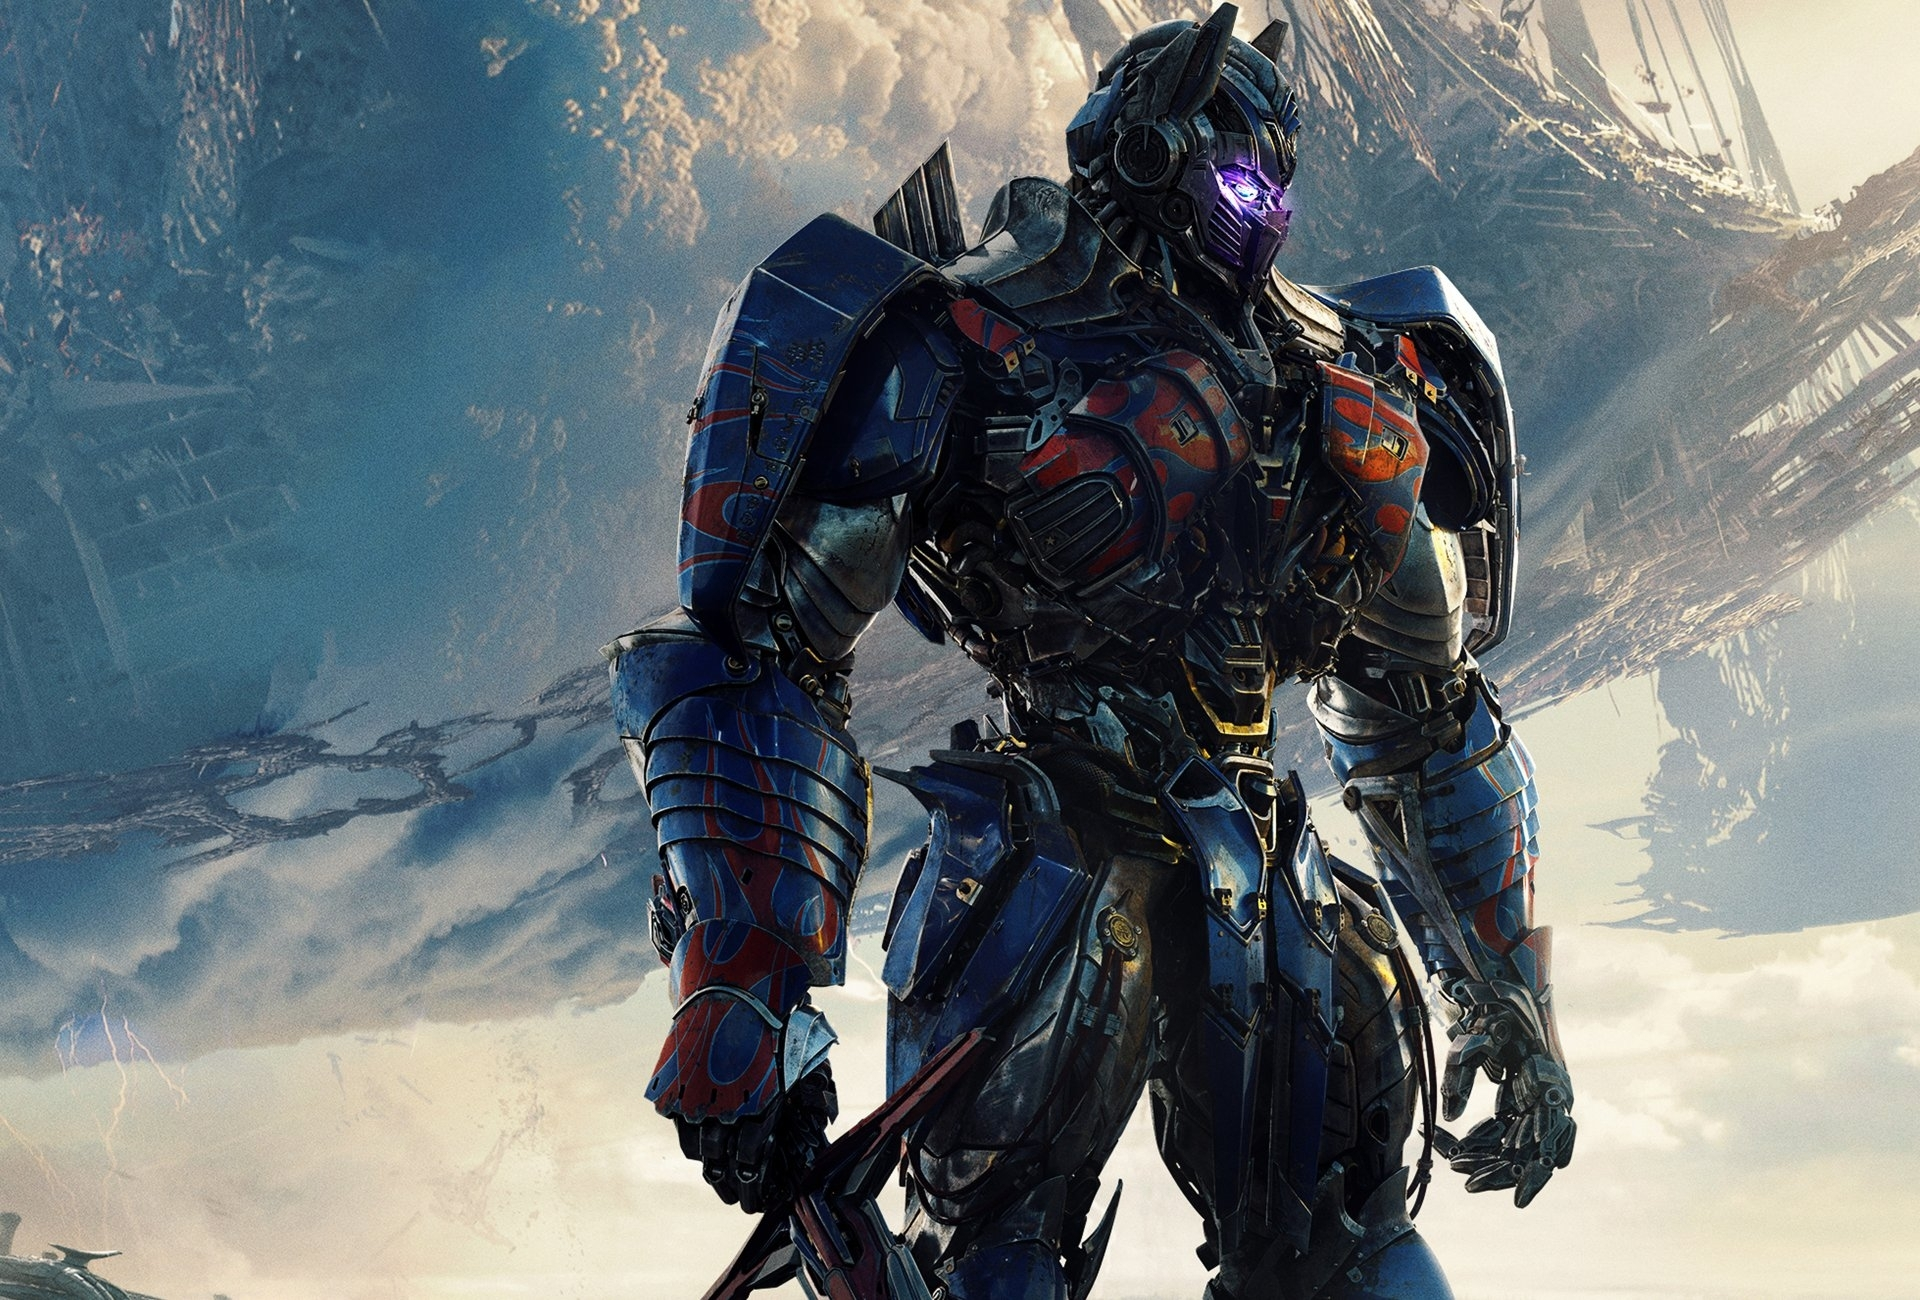 70 optimus prime fonds d'écran hd | arrière-plans - wallpaper abyss